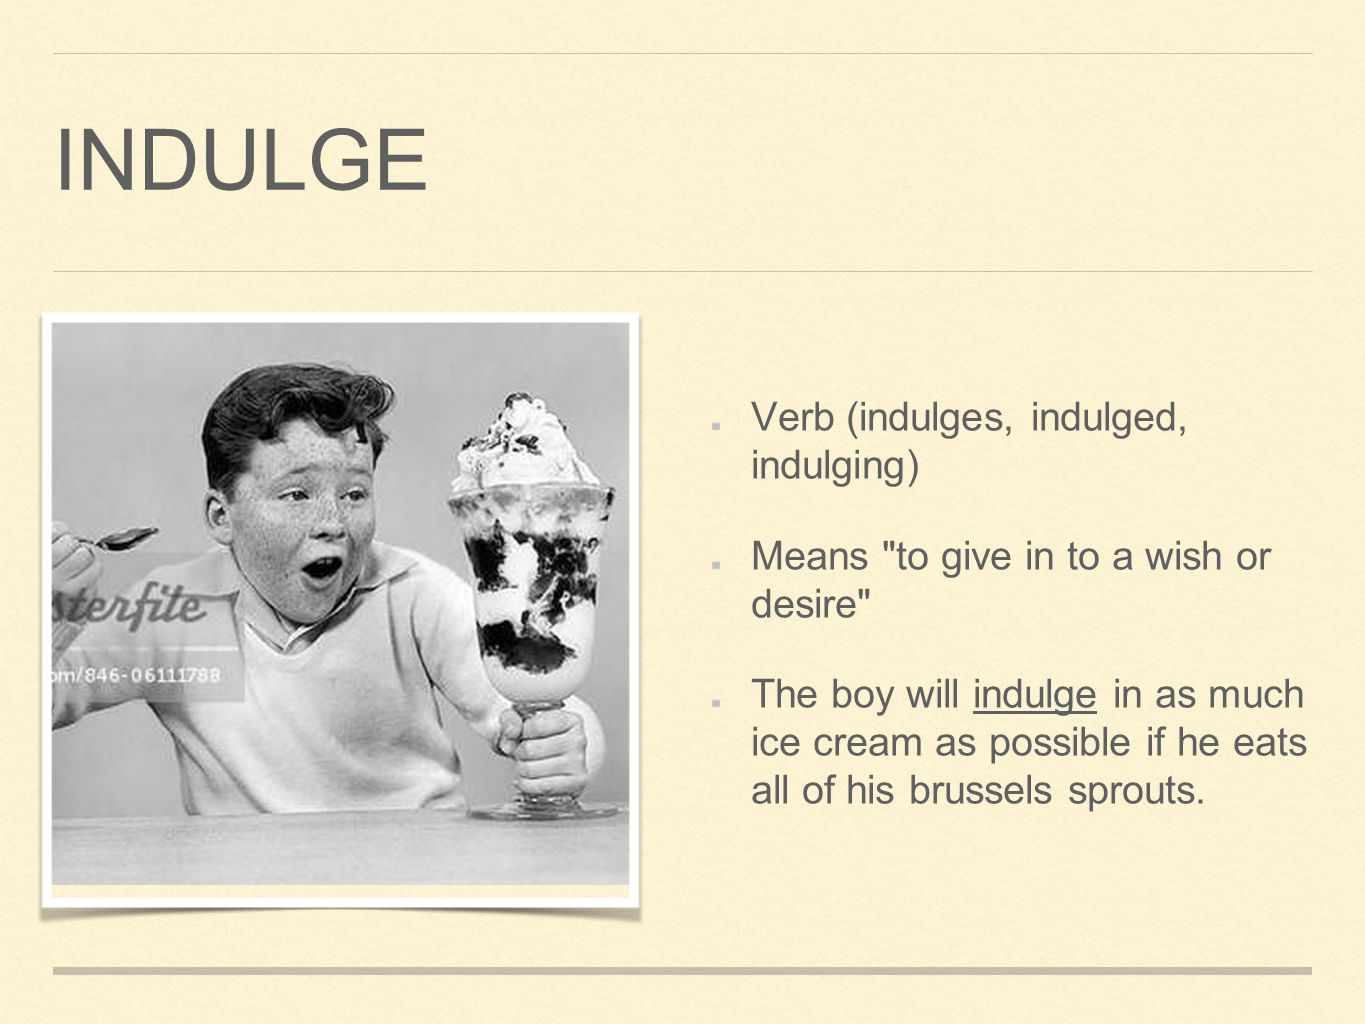 INDULGE Verb (indulges, indulged, indulging) Means to give in to a wish or desire The boy will indulge in as much ice cream as possible if he eats all of his brussels sprouts.